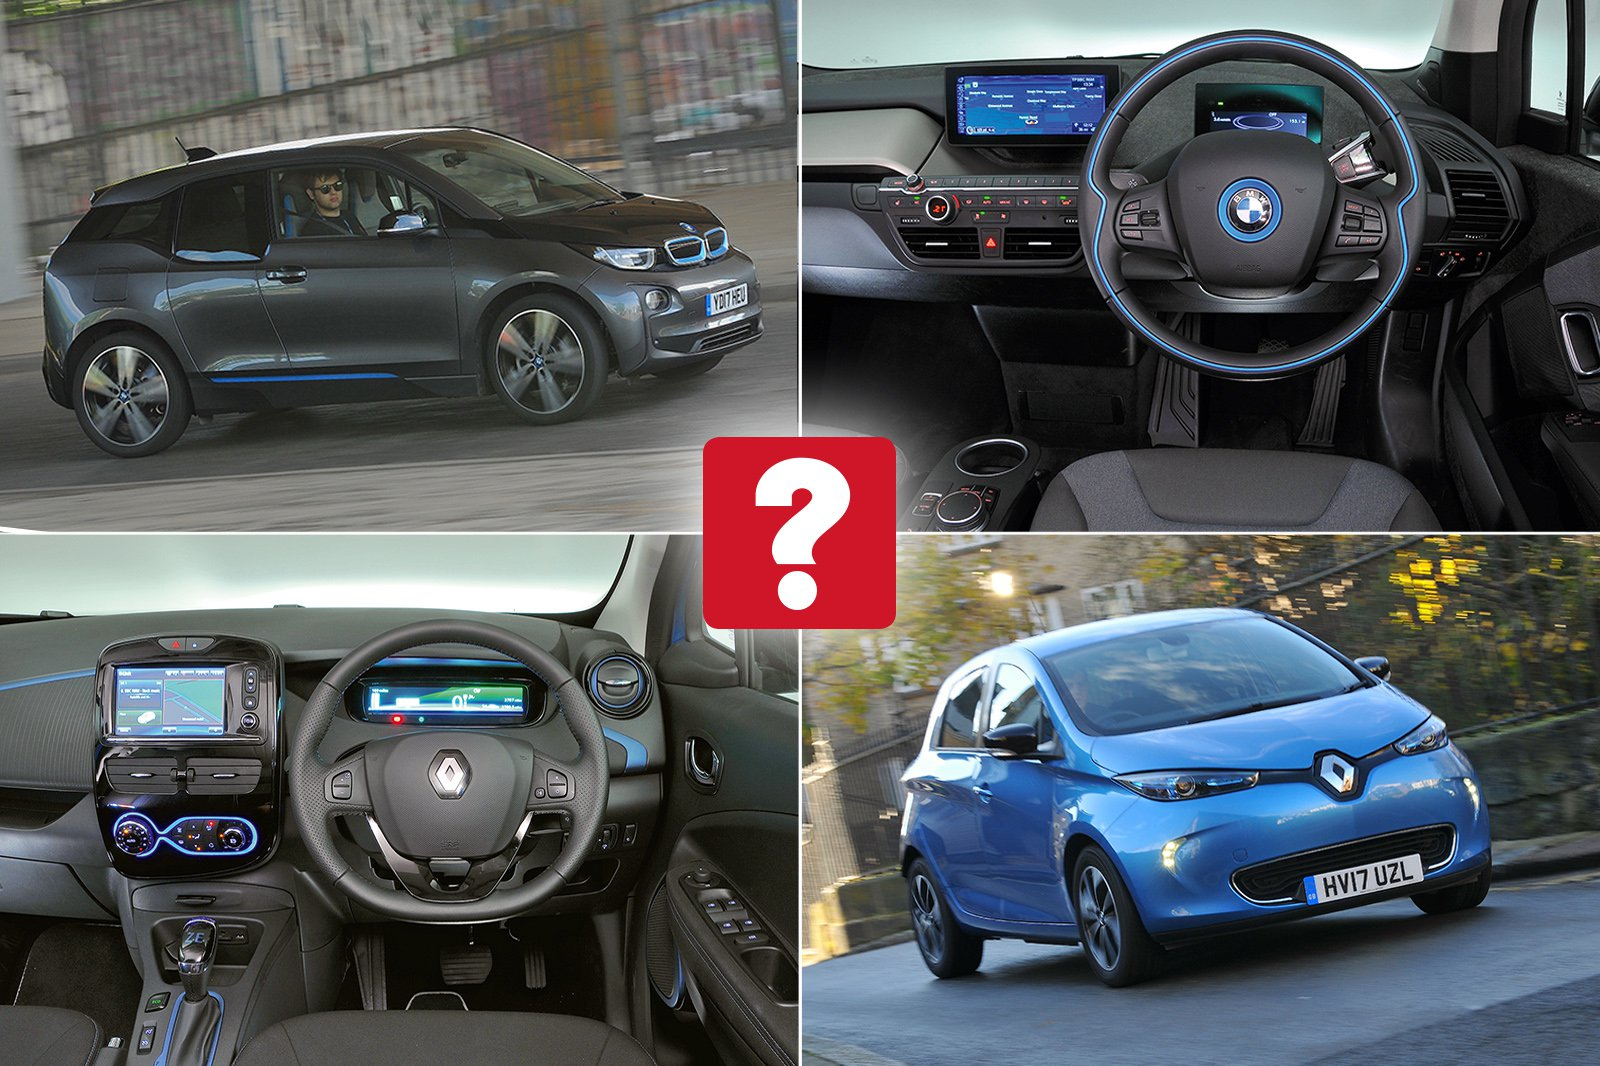 New Renault Zoe vs used BMW i3: which is best?